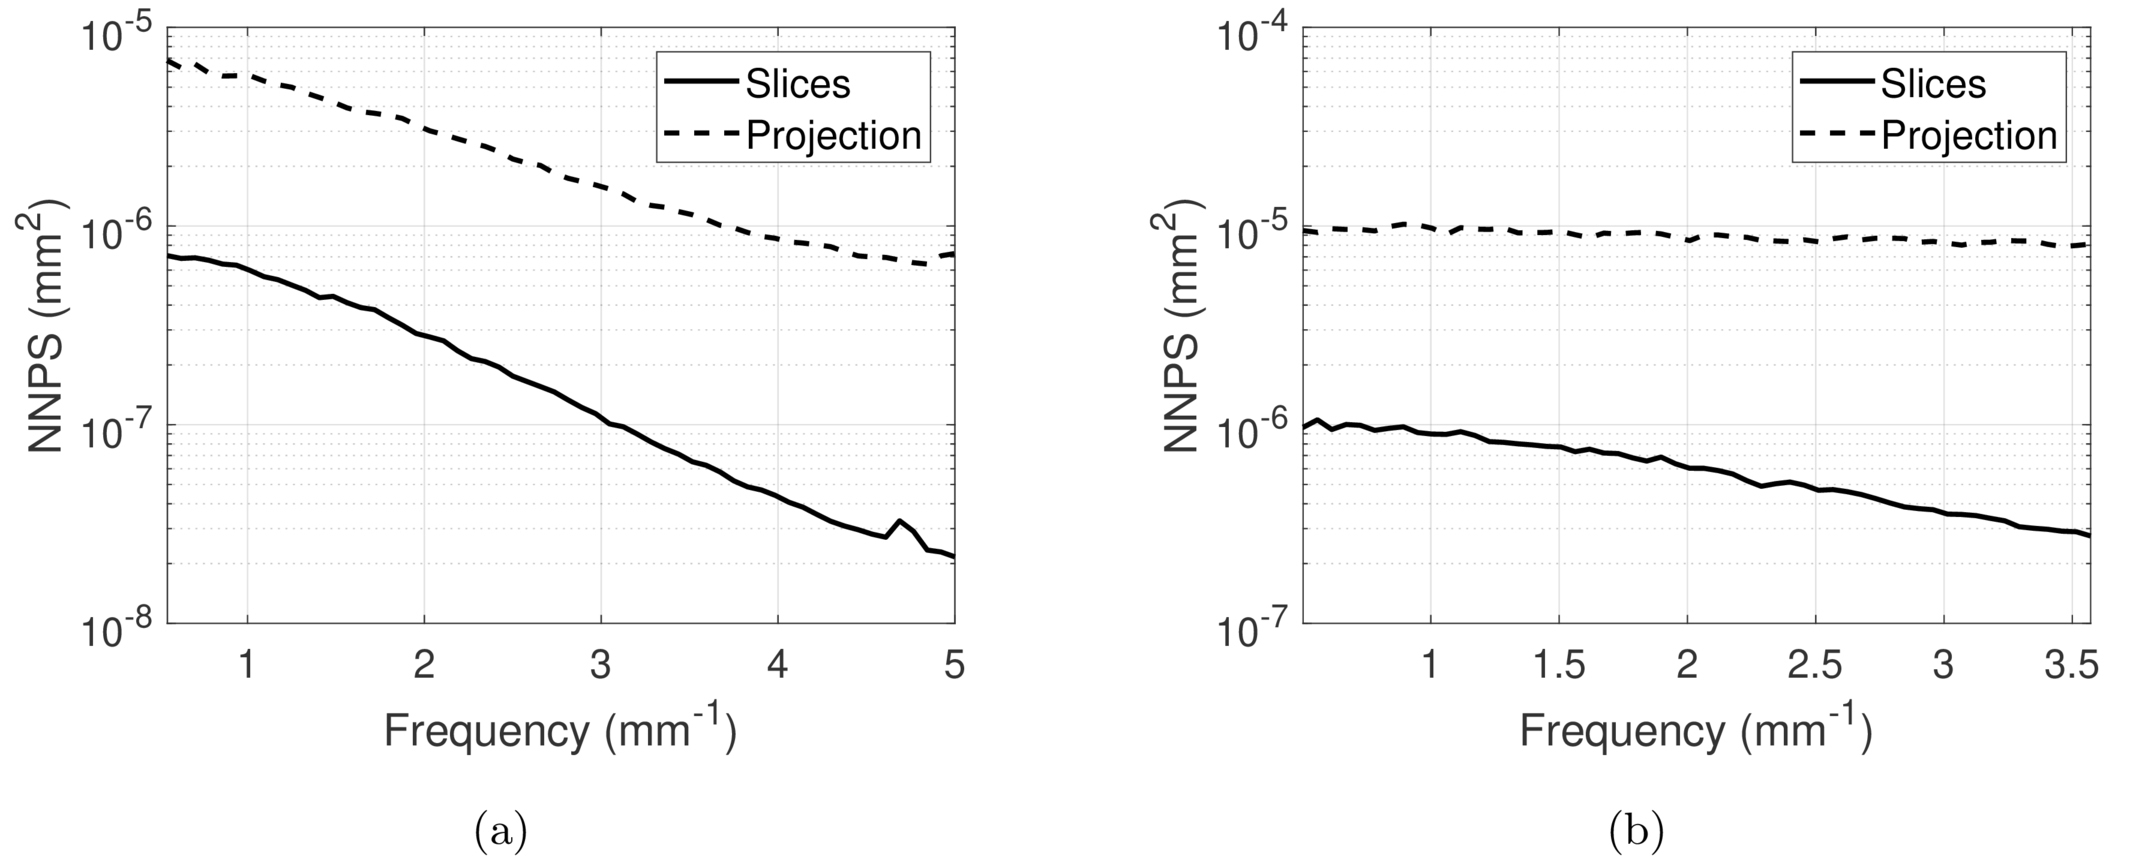 Noise measurements from reconstructed digital breast